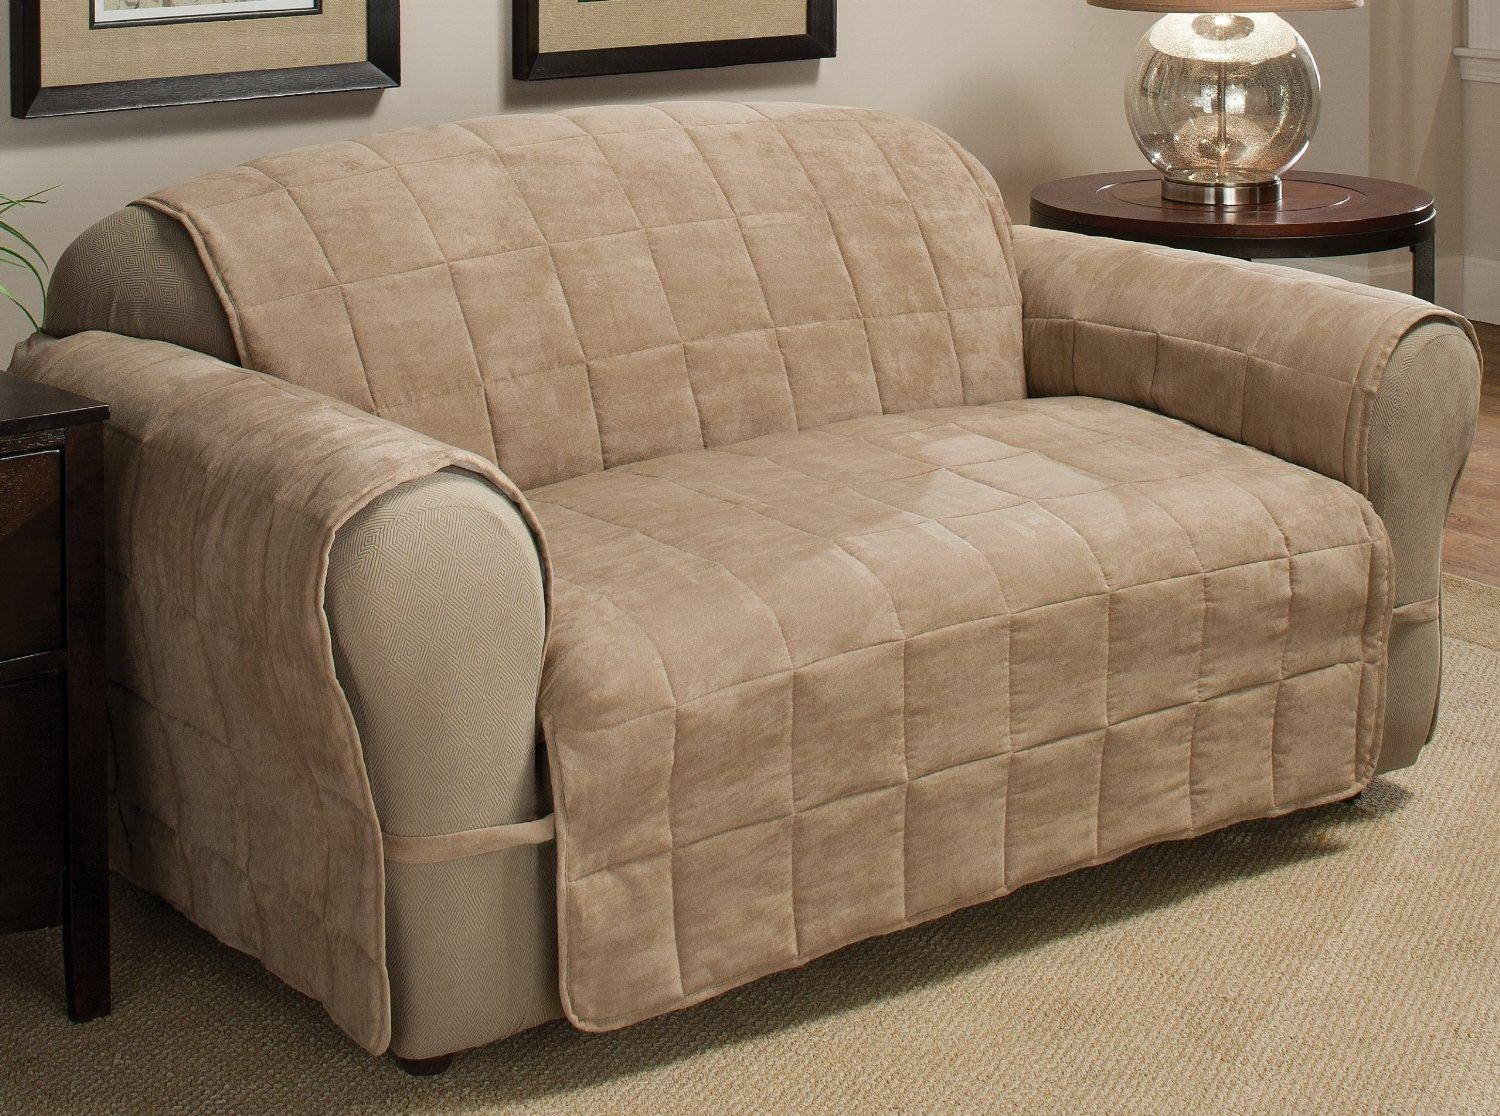 Decor: Breathtaking Target Slipcovers For Chic Home Furniture In Slipcovers For Sofas And Chairs (Image 8 of 20)